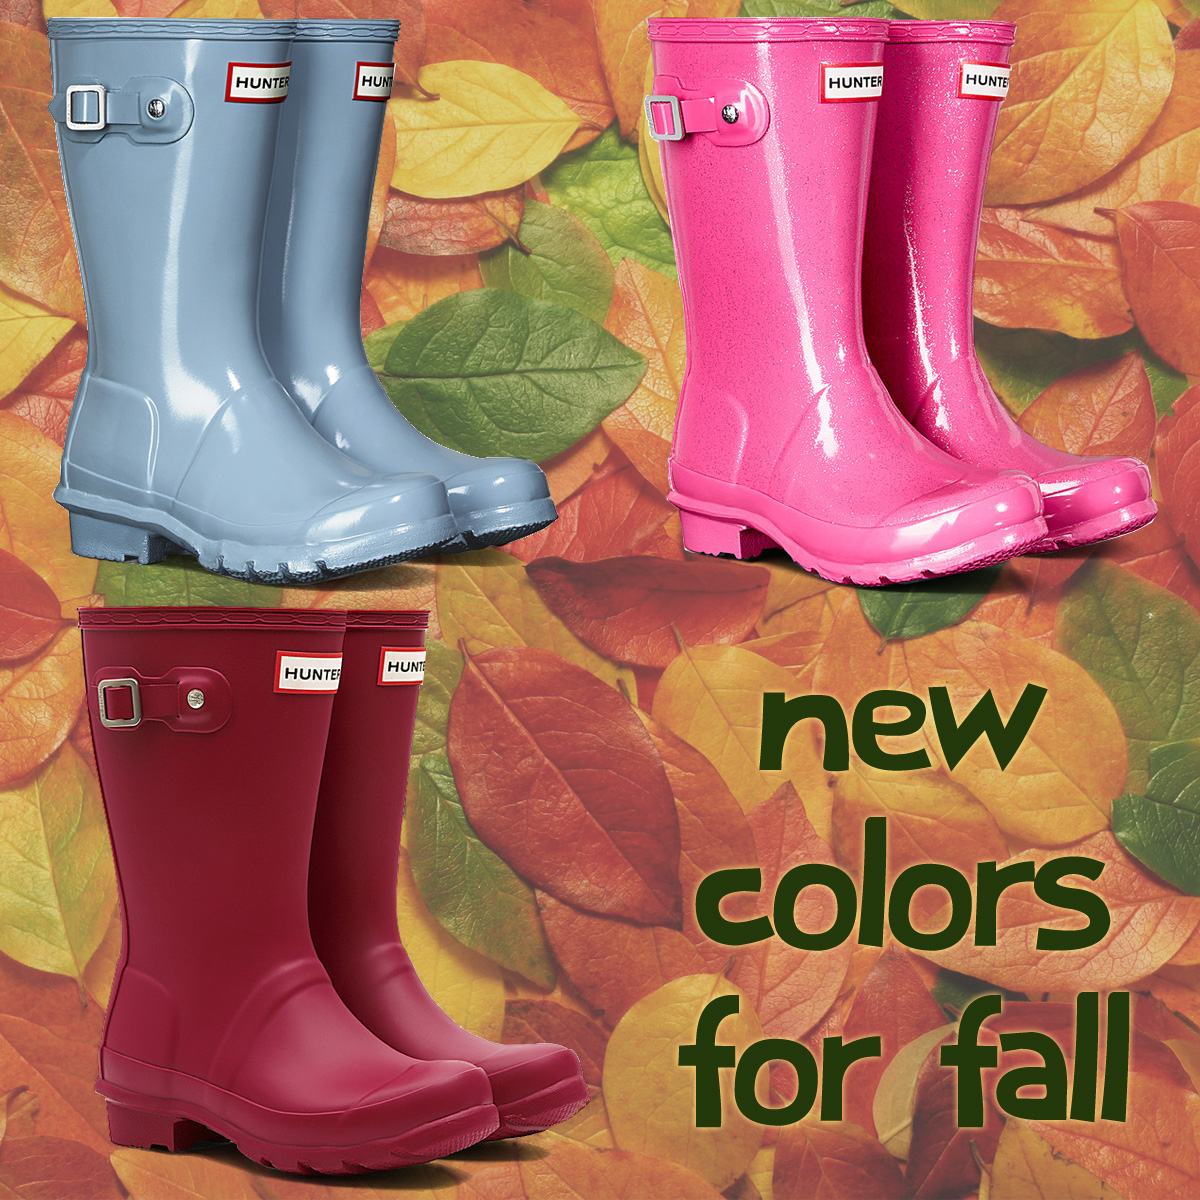 new colors from Hunter Boots